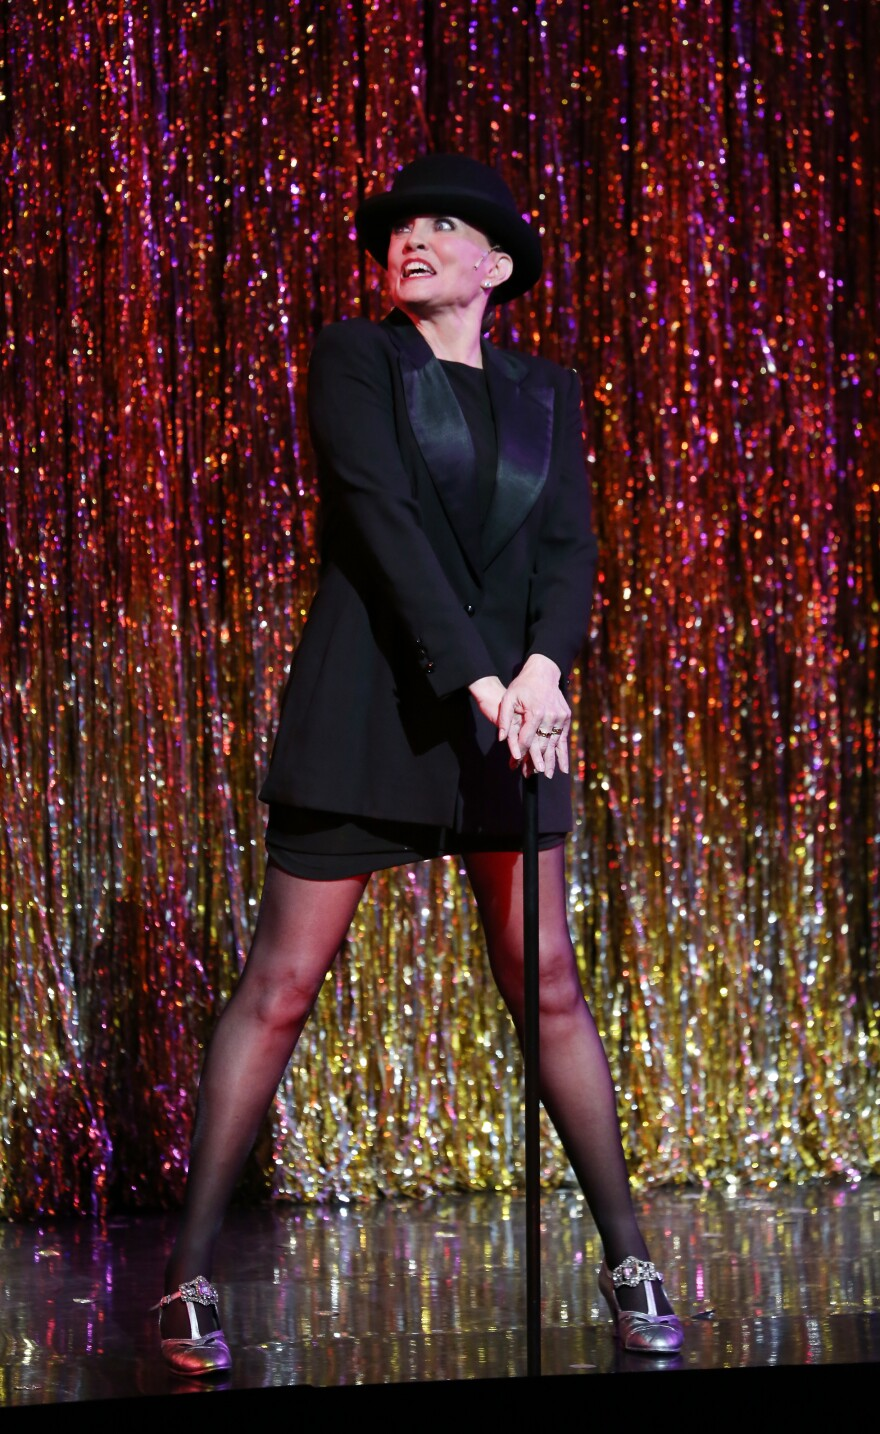 The actress, dancer and choreographer is pictured during a performance of <em>Chicago</em> as it became the second longest running show in Broadway history in 2014 in New York City.